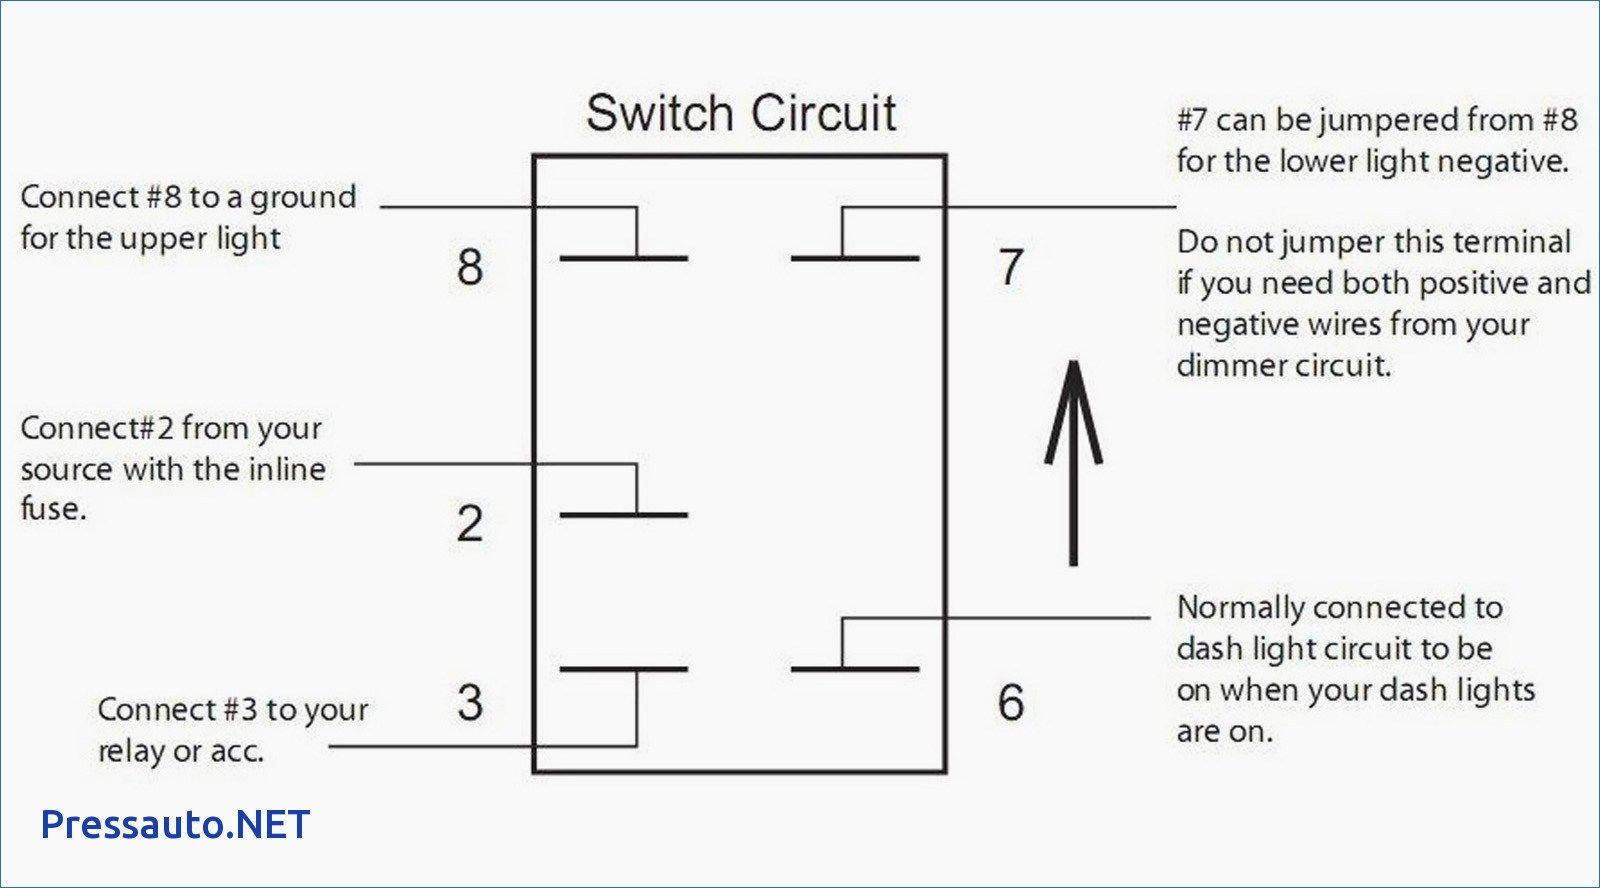 Illuminated Toggle Switch Wiring Diagram WIRING DIAGRAM ... on ford solenoid diagram, solenoid circuit, solenoid wire, solenoid operation, solenoid engine, solenoid parts, solenoid switch diagram, solenoid valve, solenoid actuator, solenoid starter, solenoid relay, solenoid coil, solenoid connector, starter diagram, solenoid schematic, solenoid body diagram, solenoid assembly diagram, winch solenoid diagram, solenoid sensor, solenoid installation,